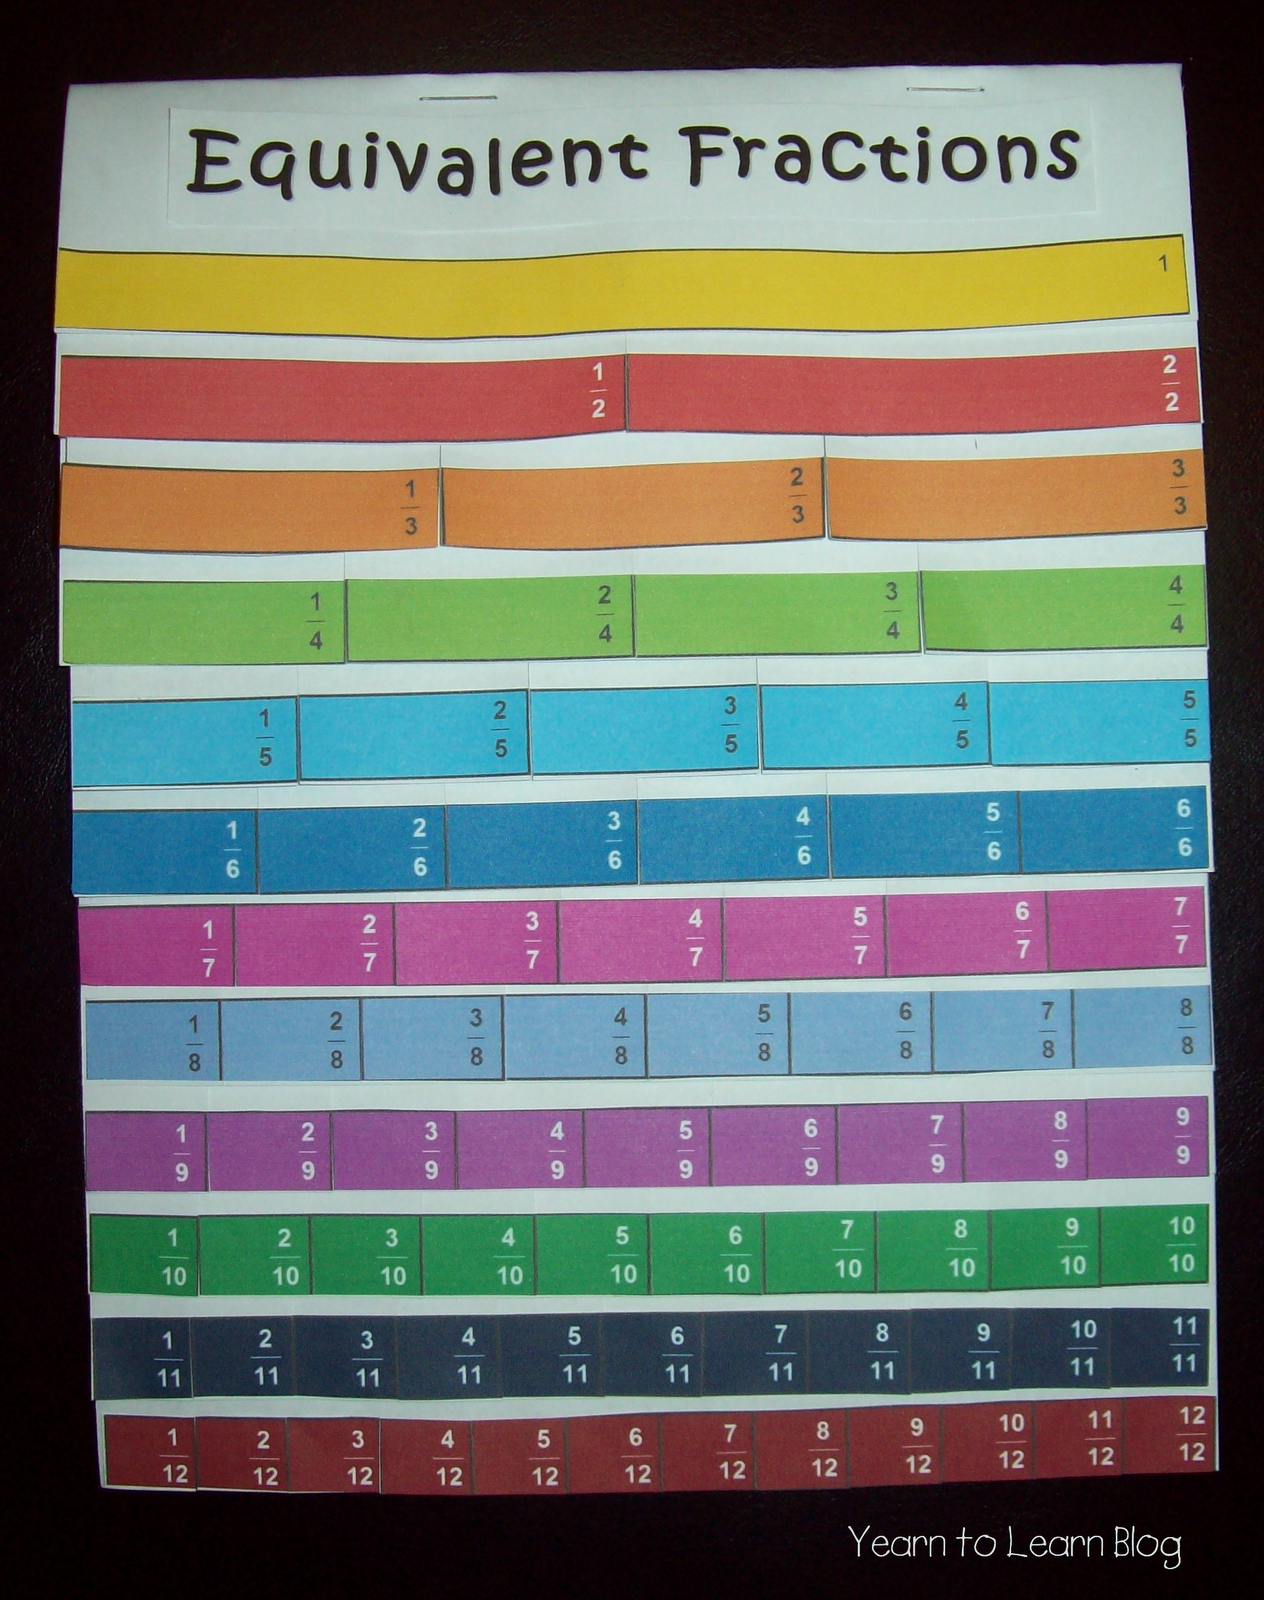 Equivalent Fractions | Yearn to Learn Blog | school | Pinterest ...